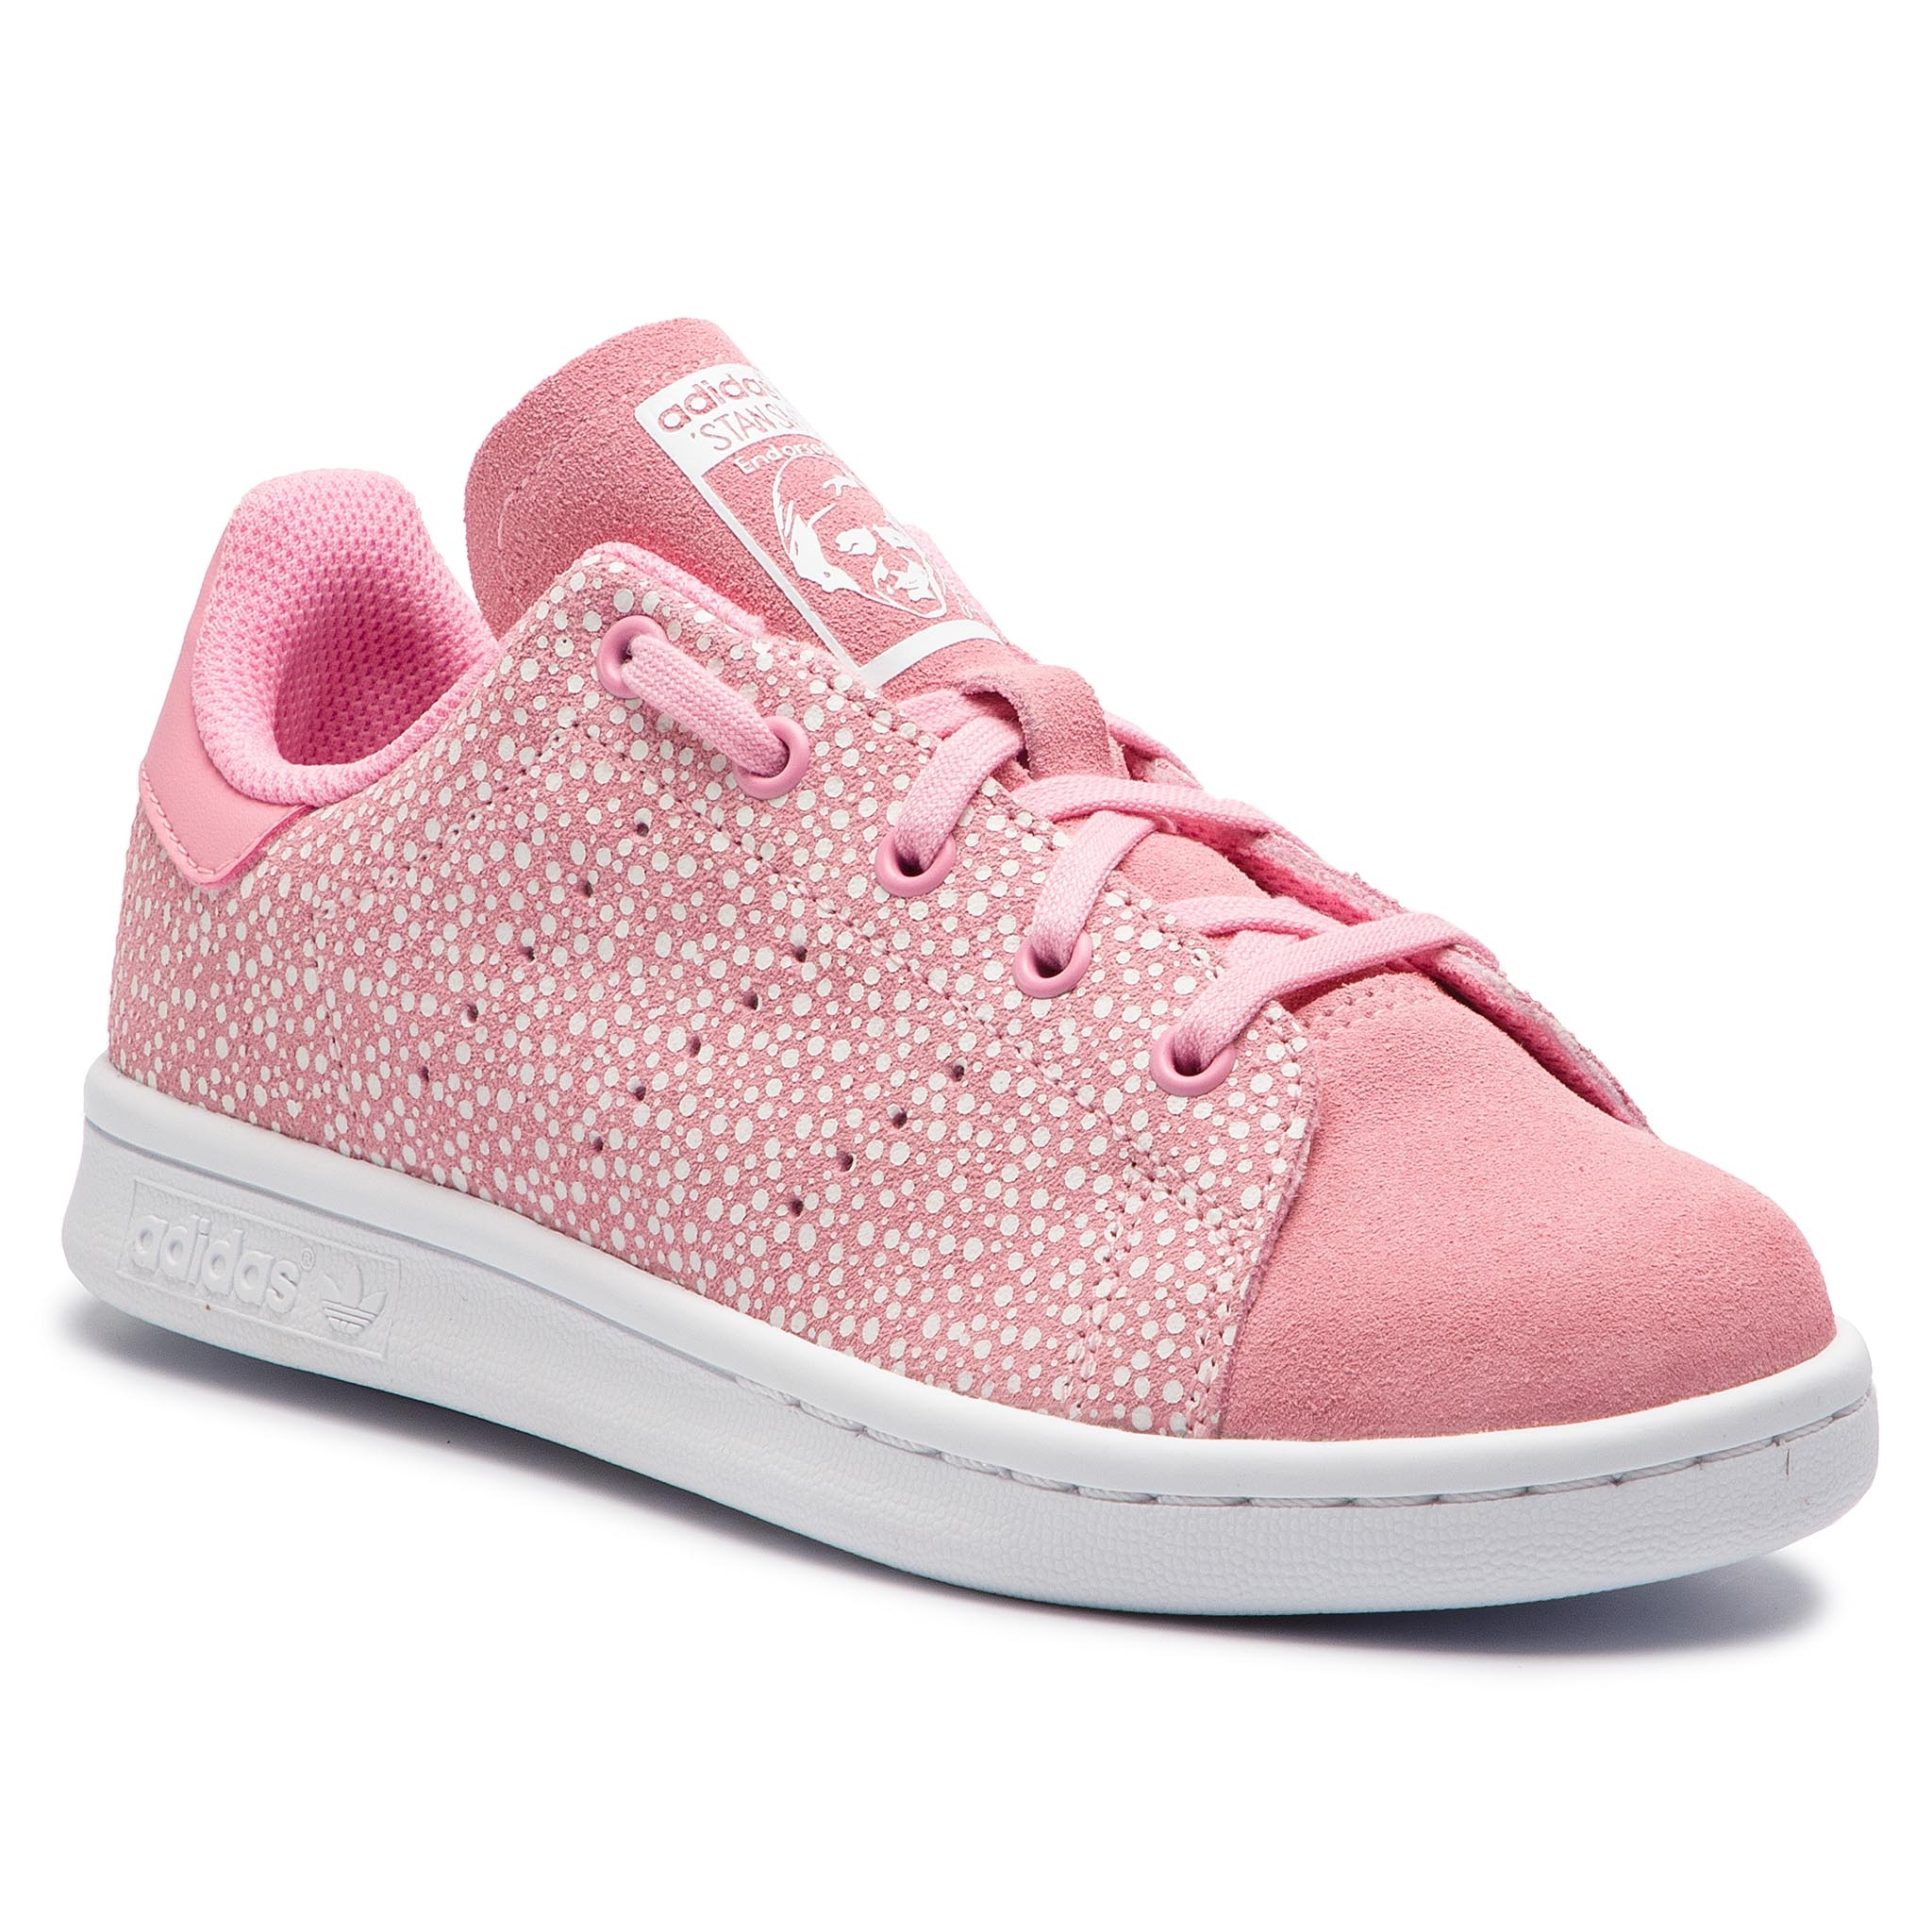 a5ded3be Zapatos adidas - Stan Smith C F34168 Ltpink/Ltpink/Ftwwht